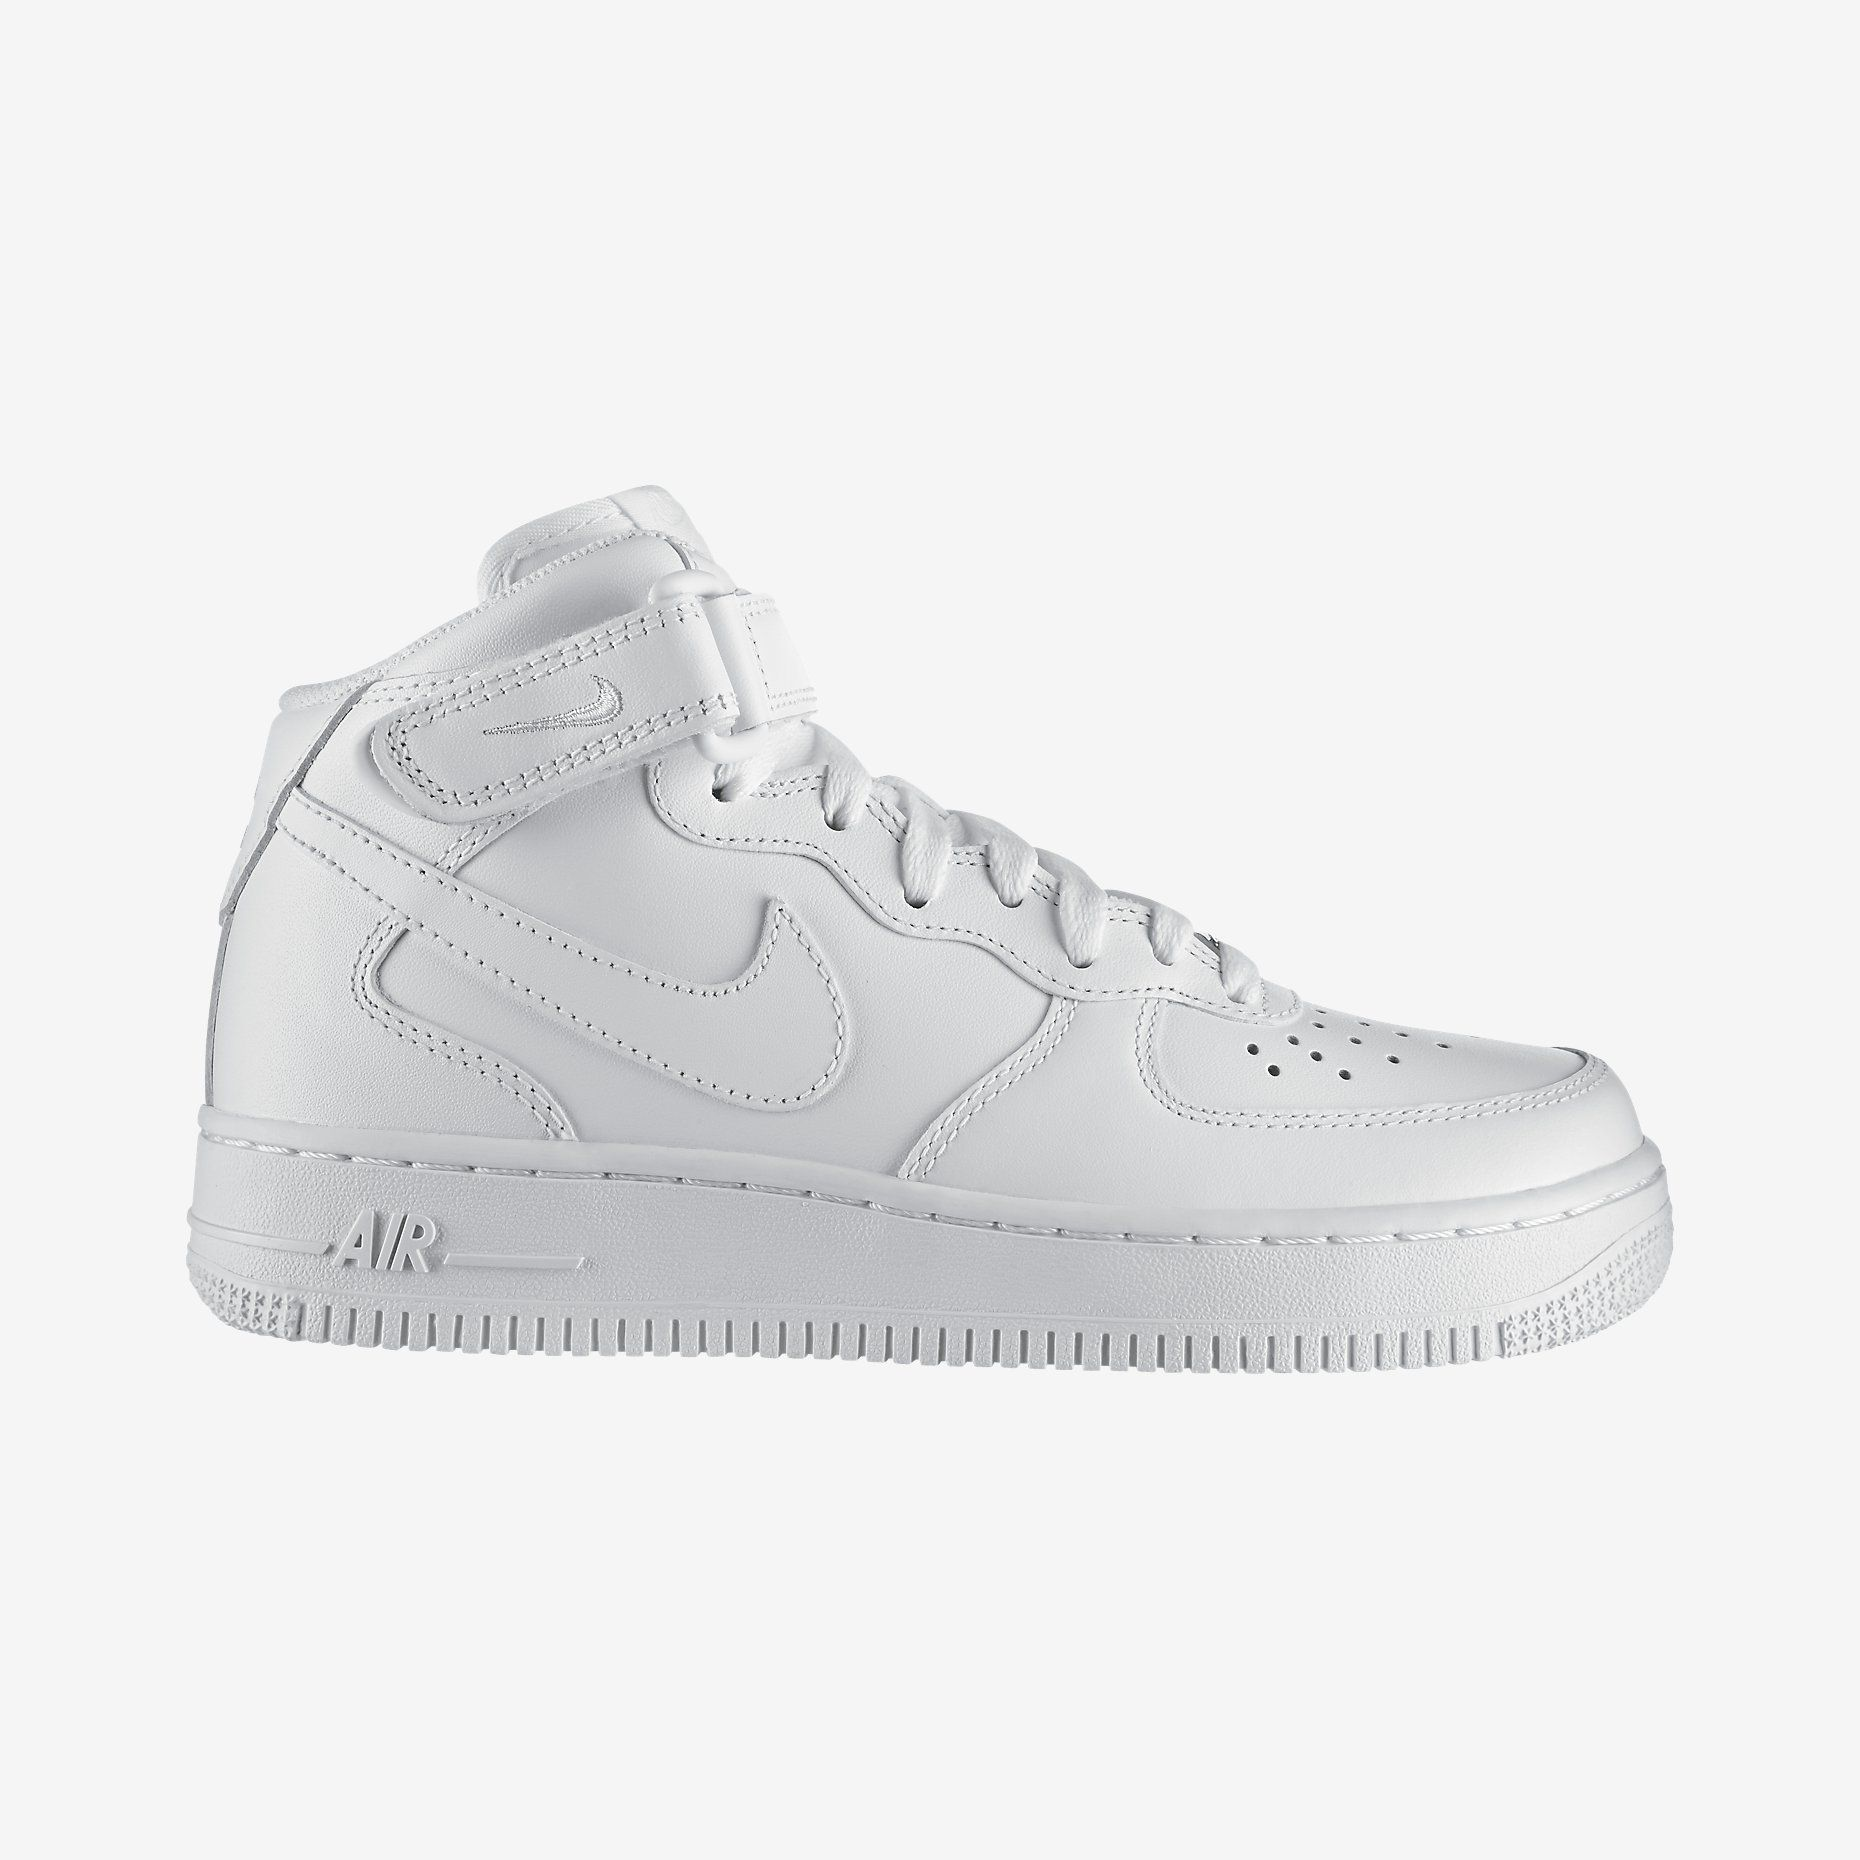 "Nike Air Force 1 Mid 07 Leather, $95; &lt;a href=""http://store.nike.com/us/en_us/pd/air-force-1-mid-07-leather-shoe/pid-10190124/pgid-10300977""&gt;nike.com&lt;/a&gt;  <!--EndFragment-->"